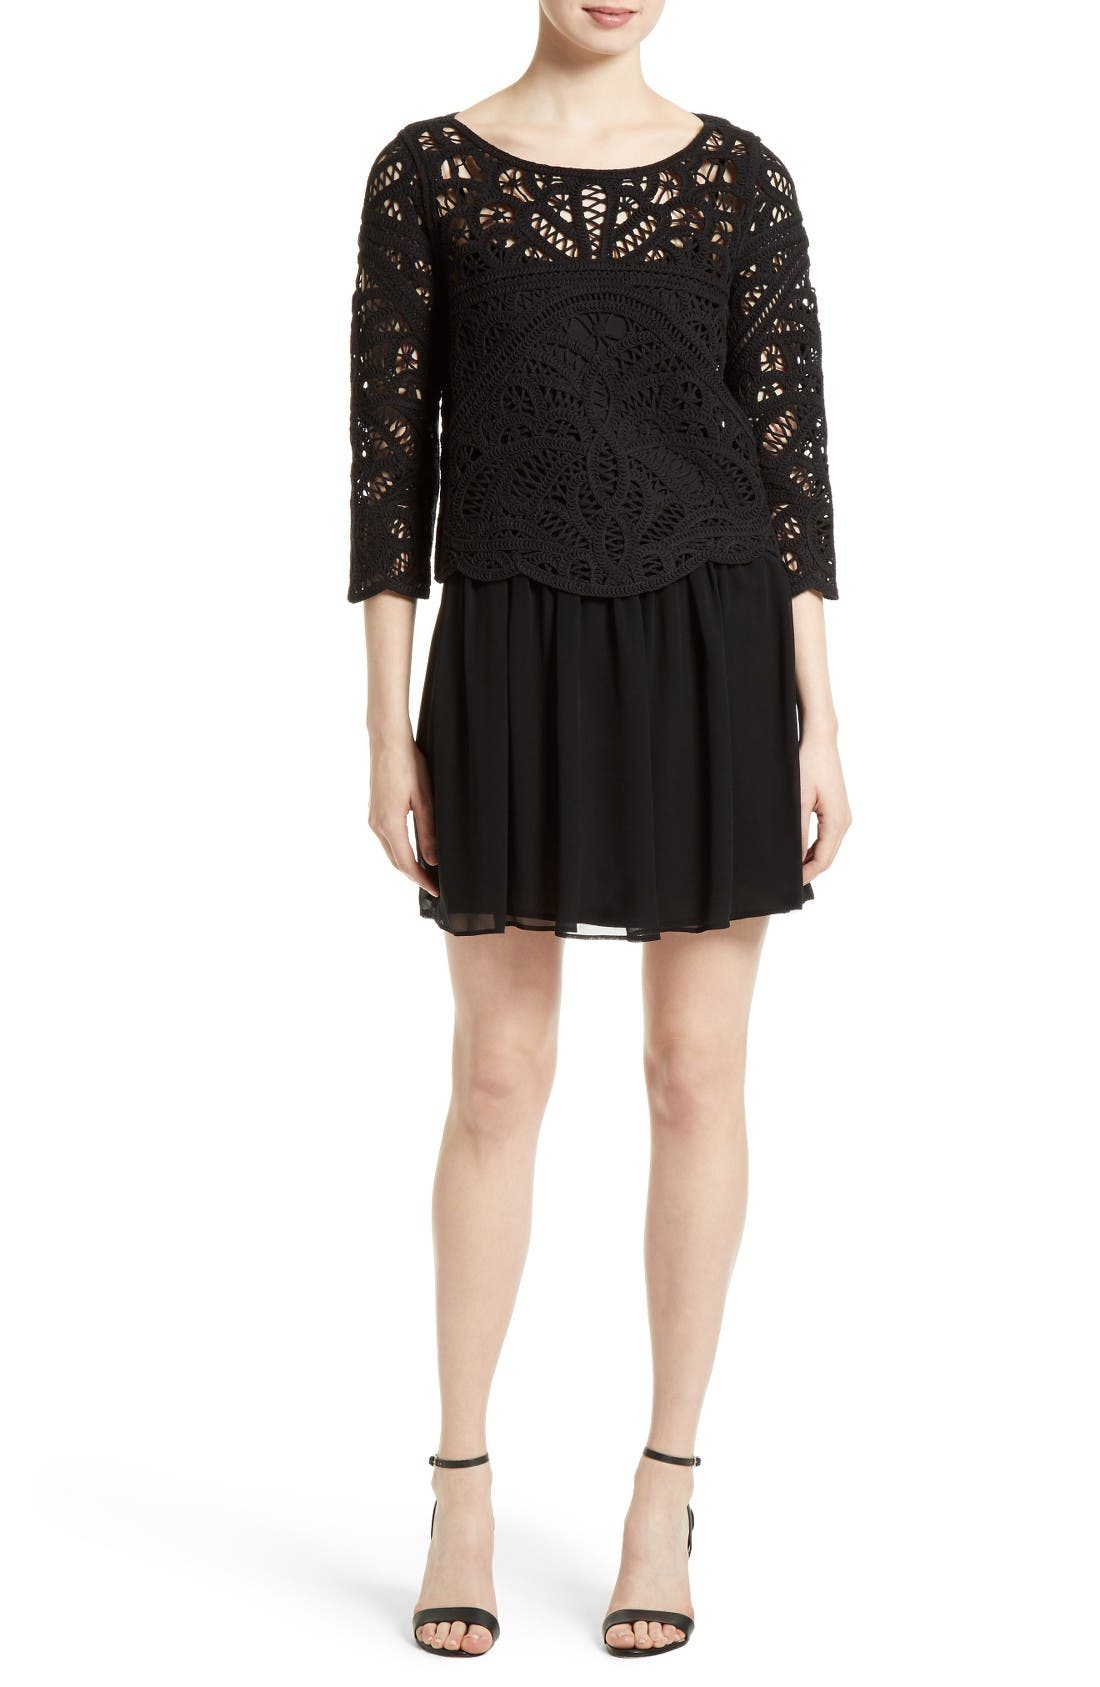 Alternate Image 1 Selected - Joie Jordie Crochet Overlay Chiffon Dress